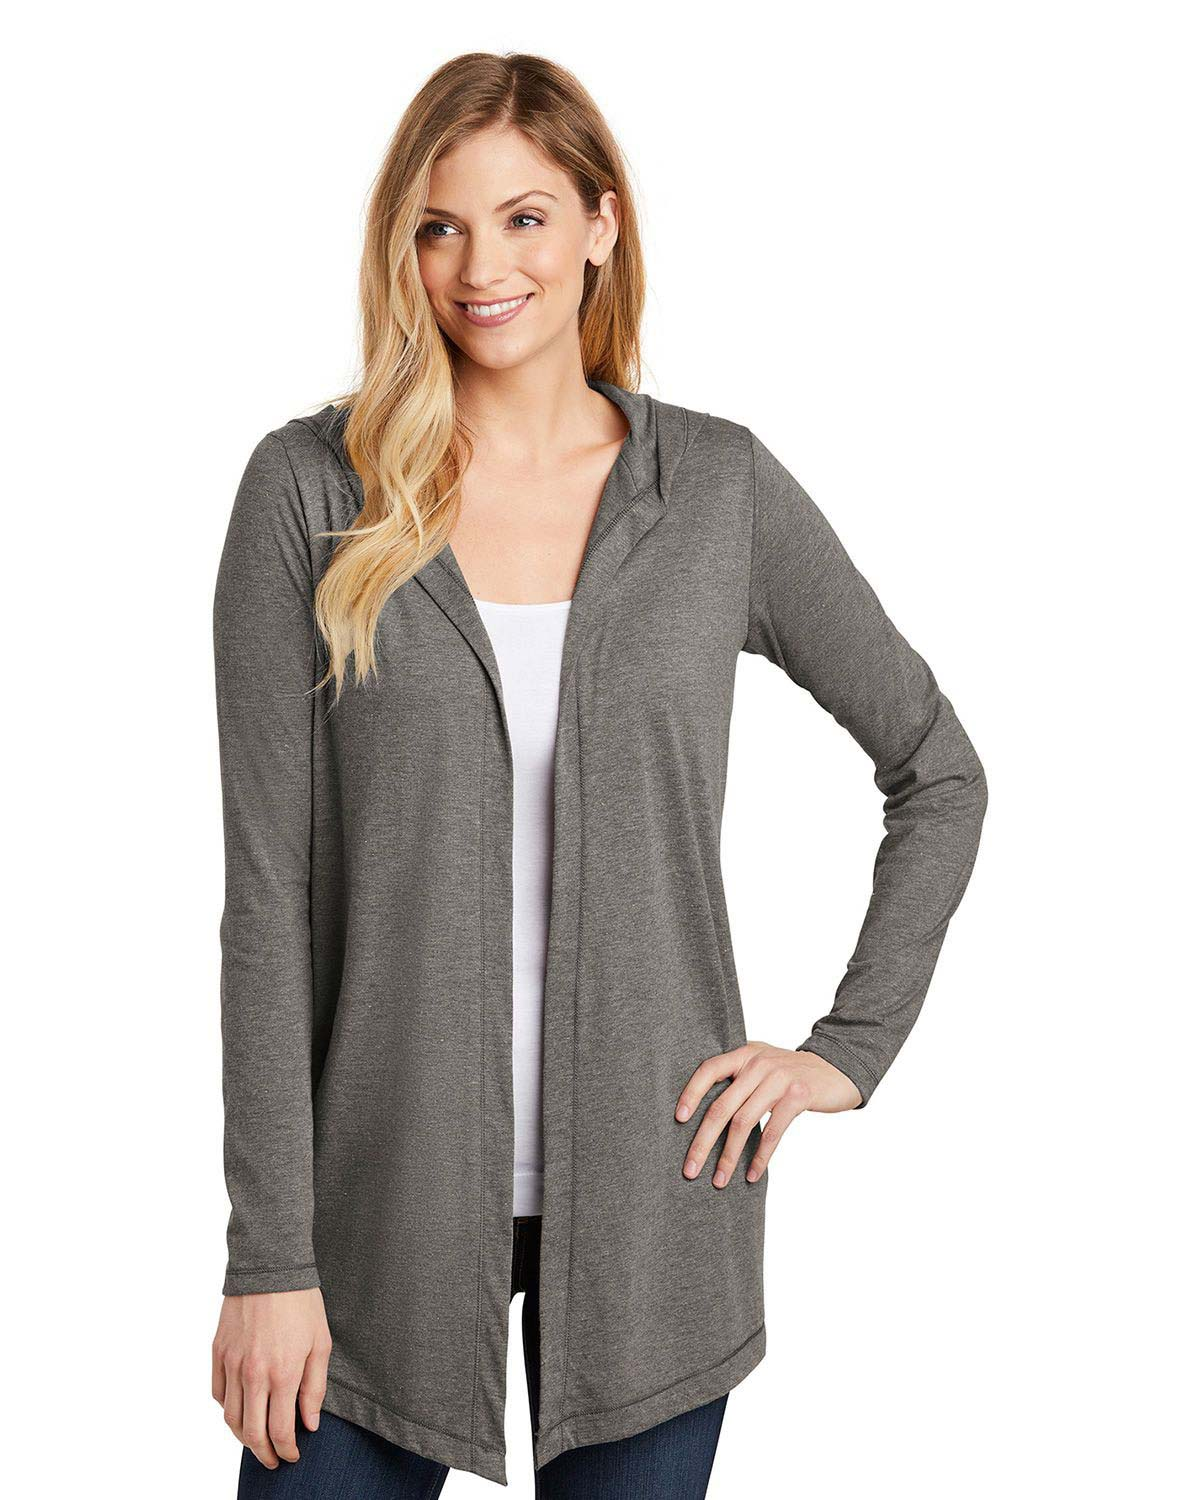 District DT156 Womens Perfect Tri Hooded Cardigan